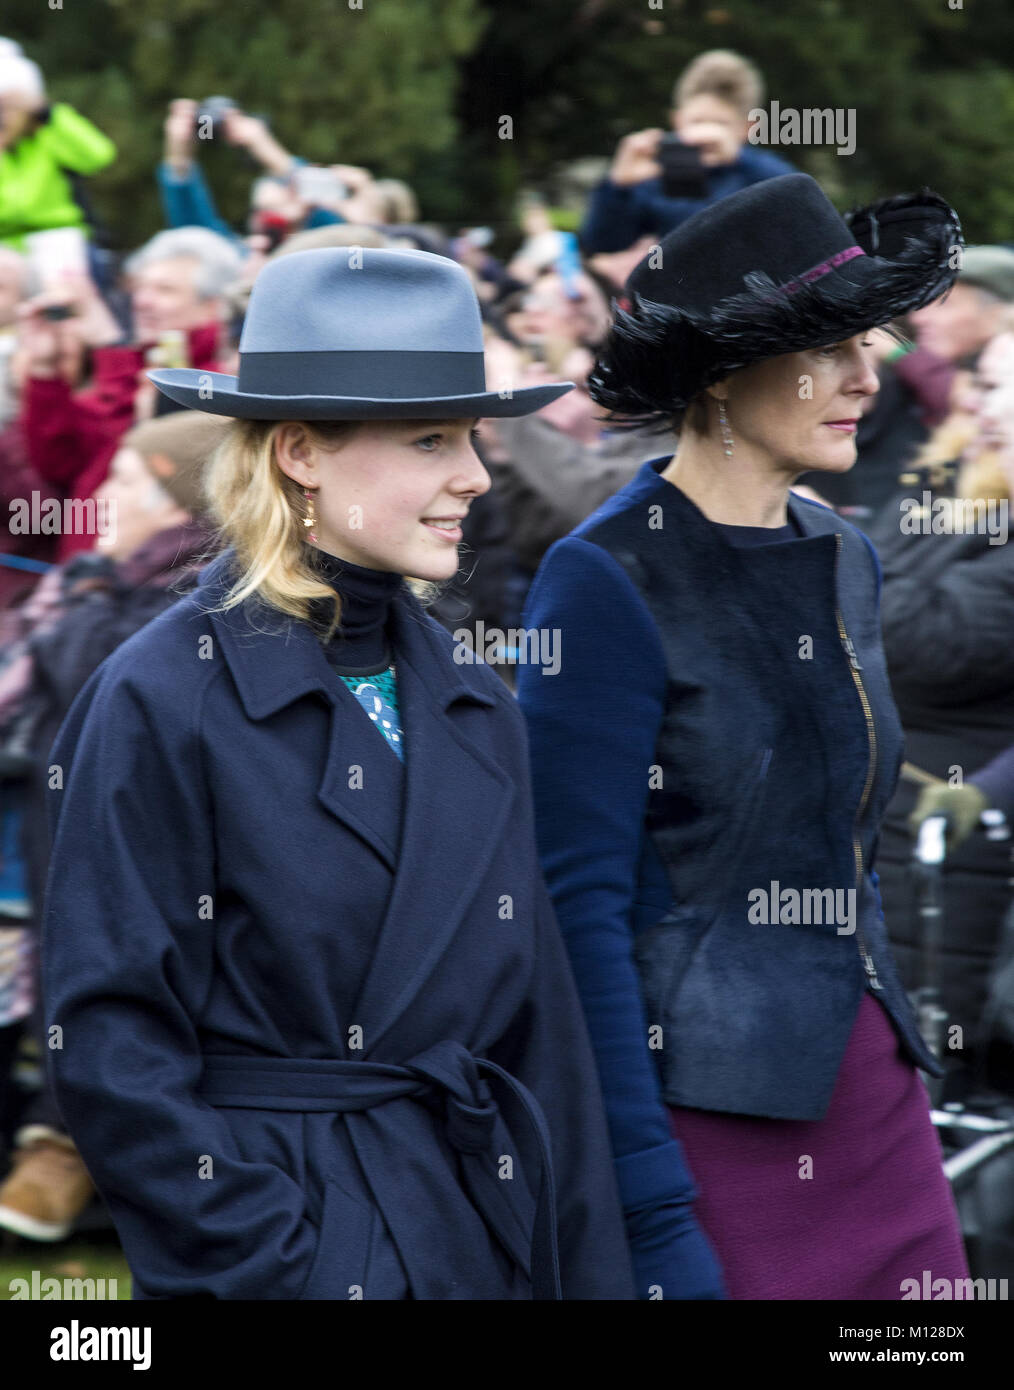 The British Royal family arrive at Sandringham to celebrate Christmas Day  Featuring: Royal Family Where: Sandringham, - Stock Image